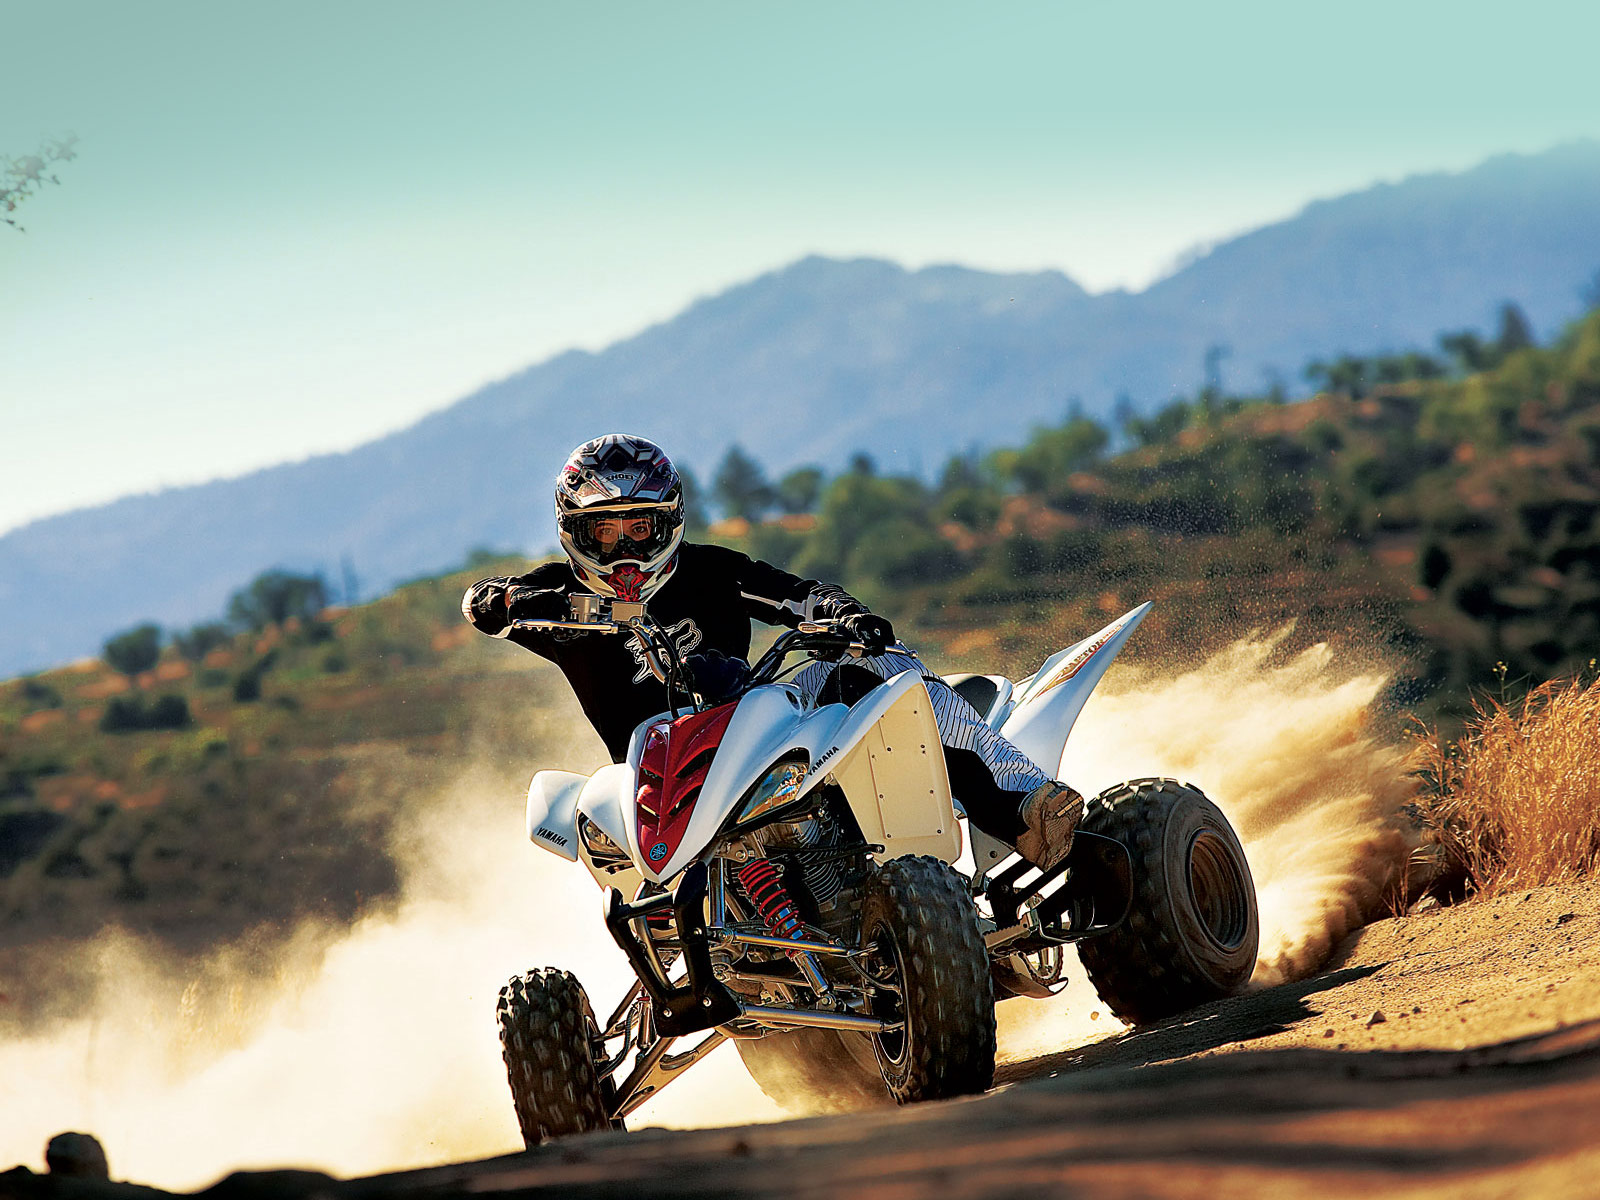 Amazing ATV Race Wallpaper Best Desktop Images 2565 Wallpaper Cool 1600x1200